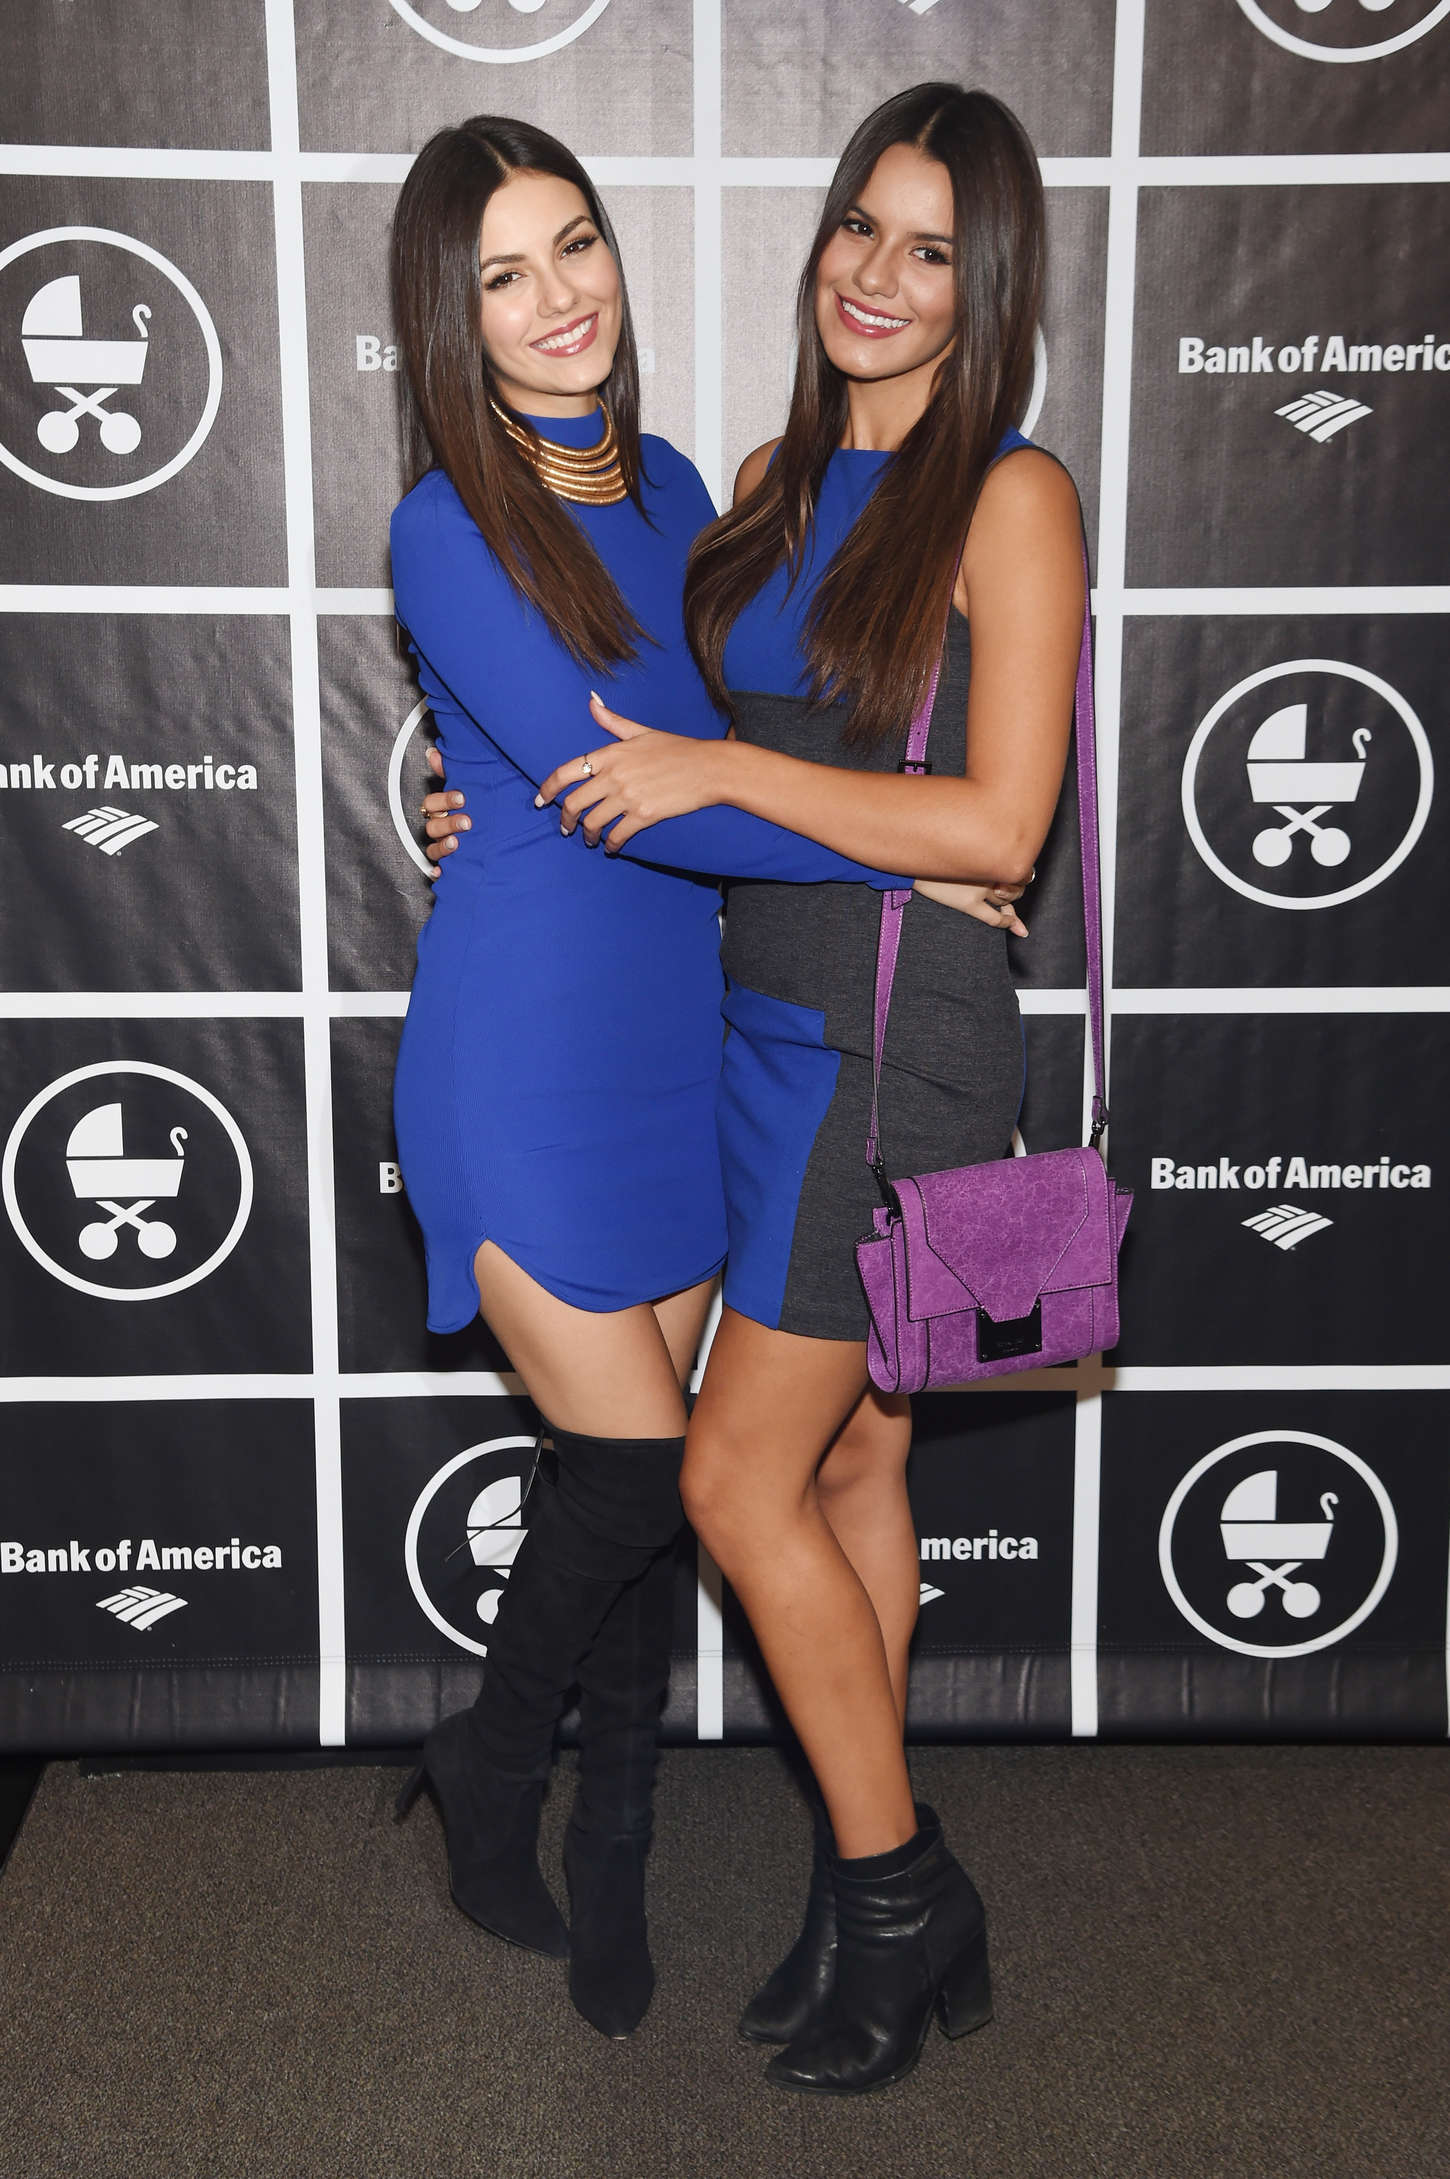 Madison Reed An Evening with Jerry Seinfeld and Amy Schumer in New York